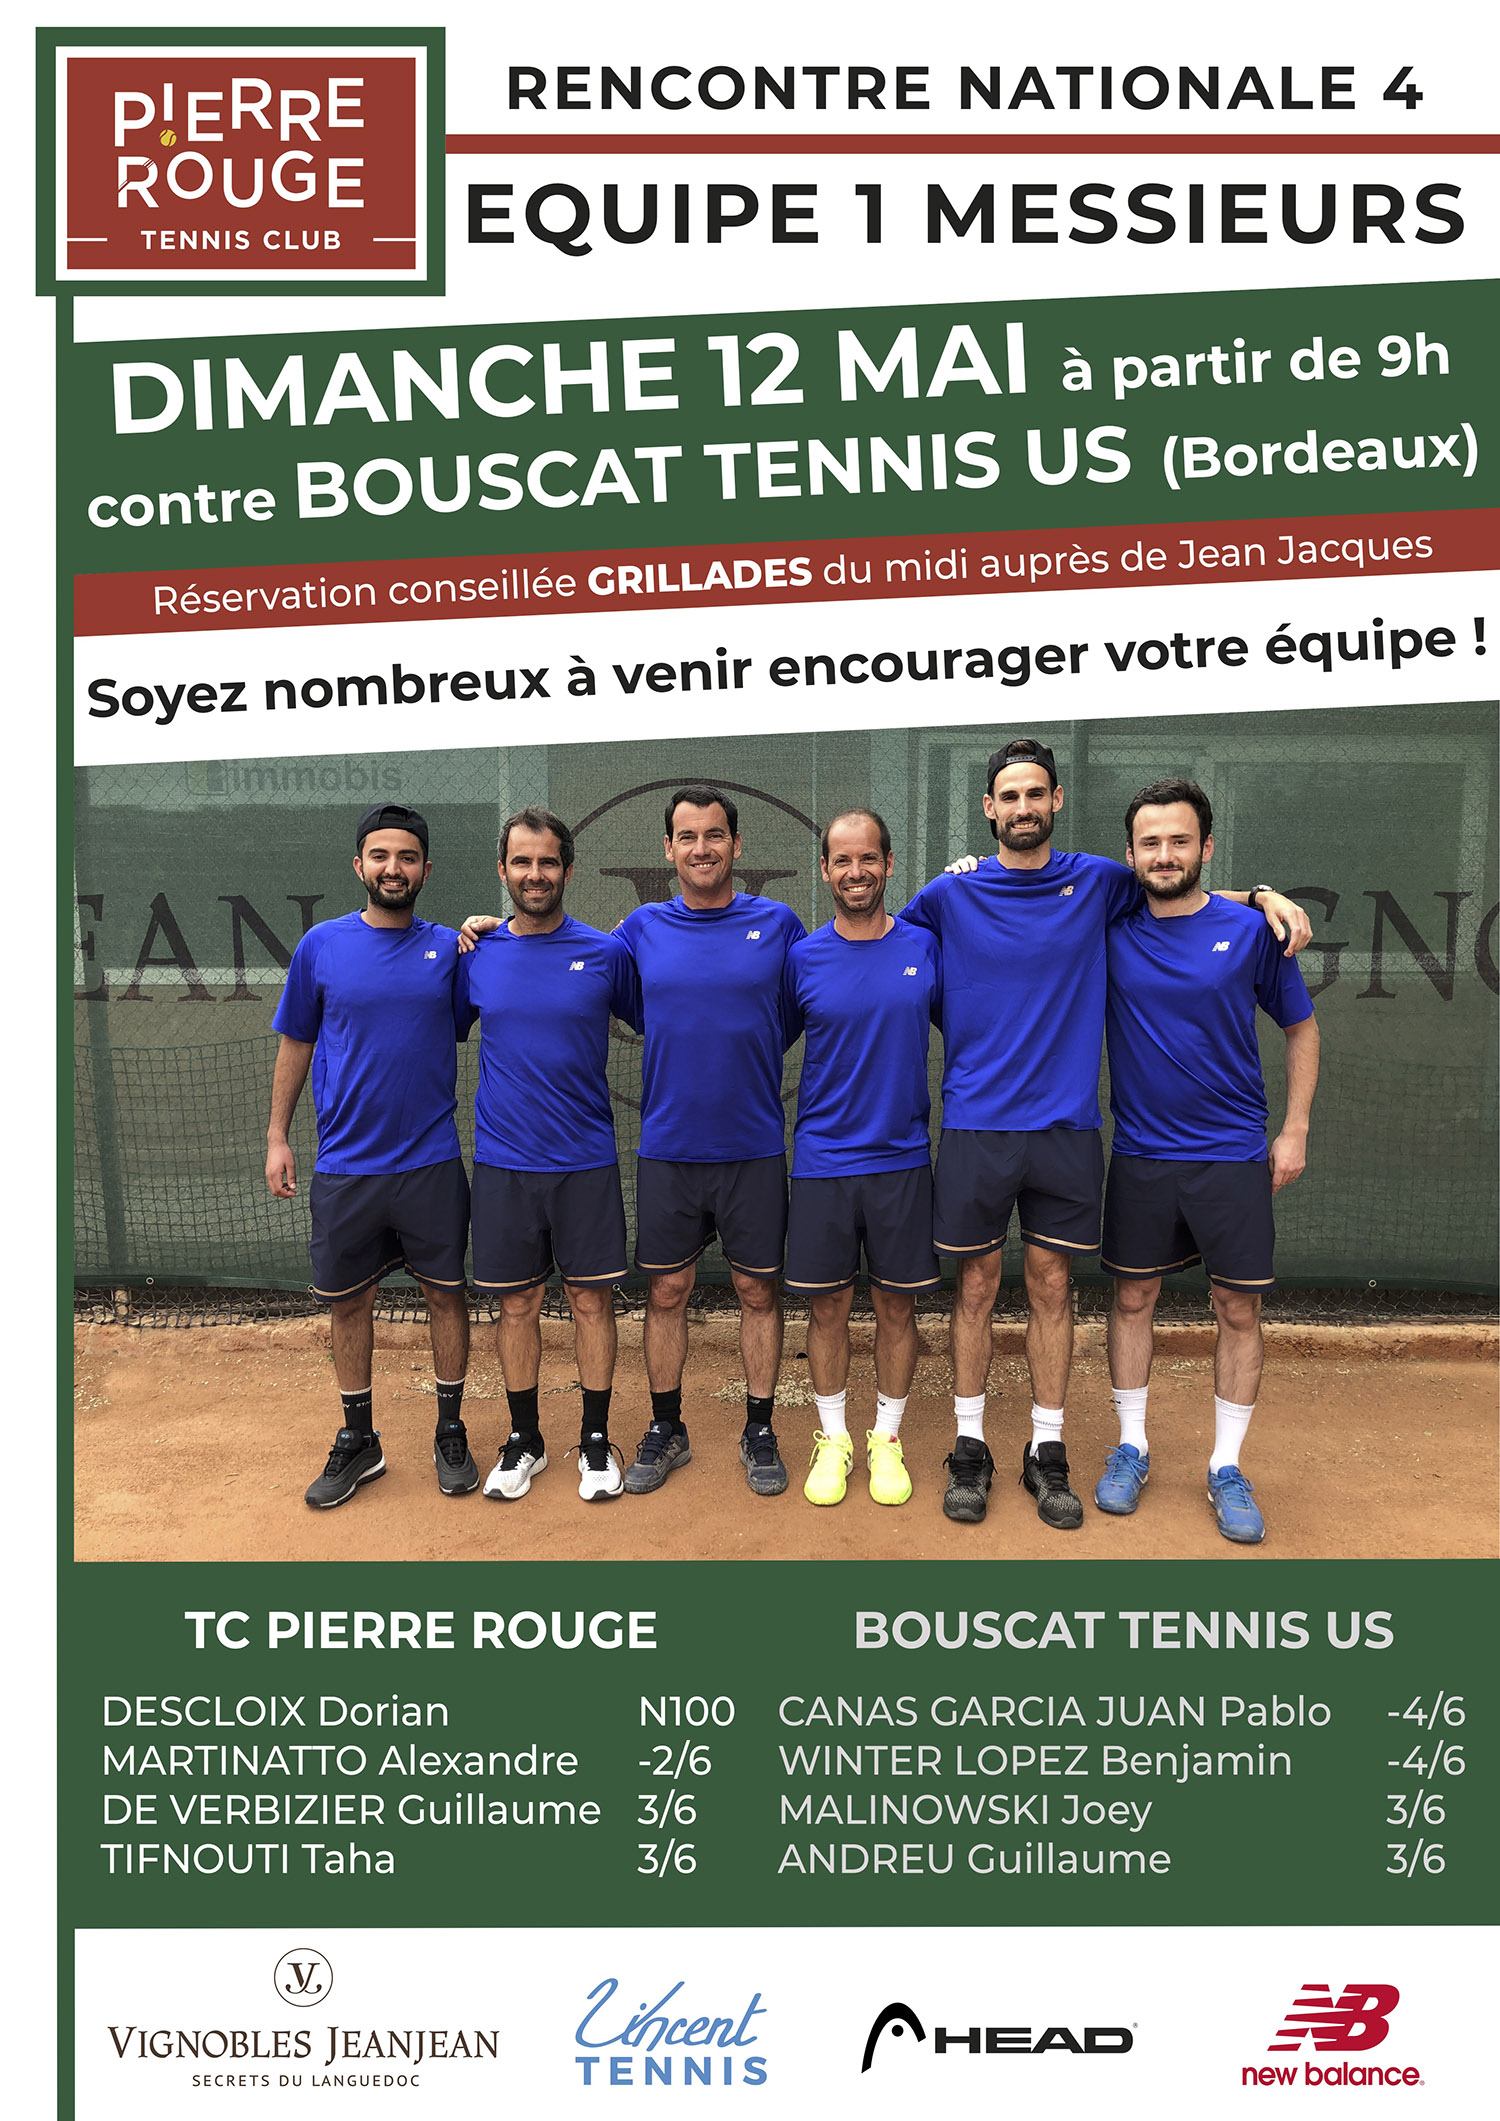 National 4 - TC Pierre Rouge contre US Bouscat Tennis